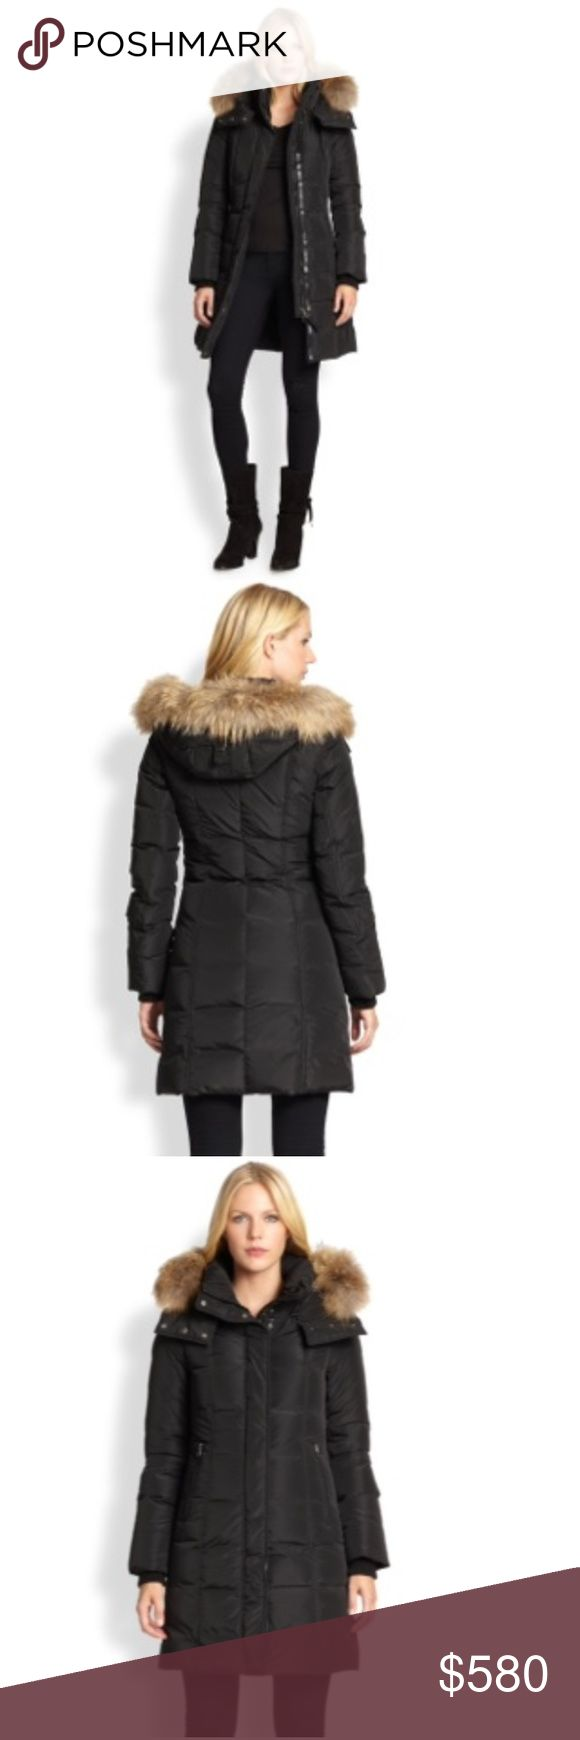 Mackage Fur Leather Trim Down Coat S with Tag Mackage Fur Leather Trim Down Coat with Original Tag Size Small!!! It's super warm and stylish down coat for winter!!Black color, Midi length, Removal raccoon fur hat. great condition,wear 3-5 times gently. I bought this coat at Saks fifth avenue $780. It comes with original tag and coat cover from Saks. Mackage Jackets & Coats Puffers